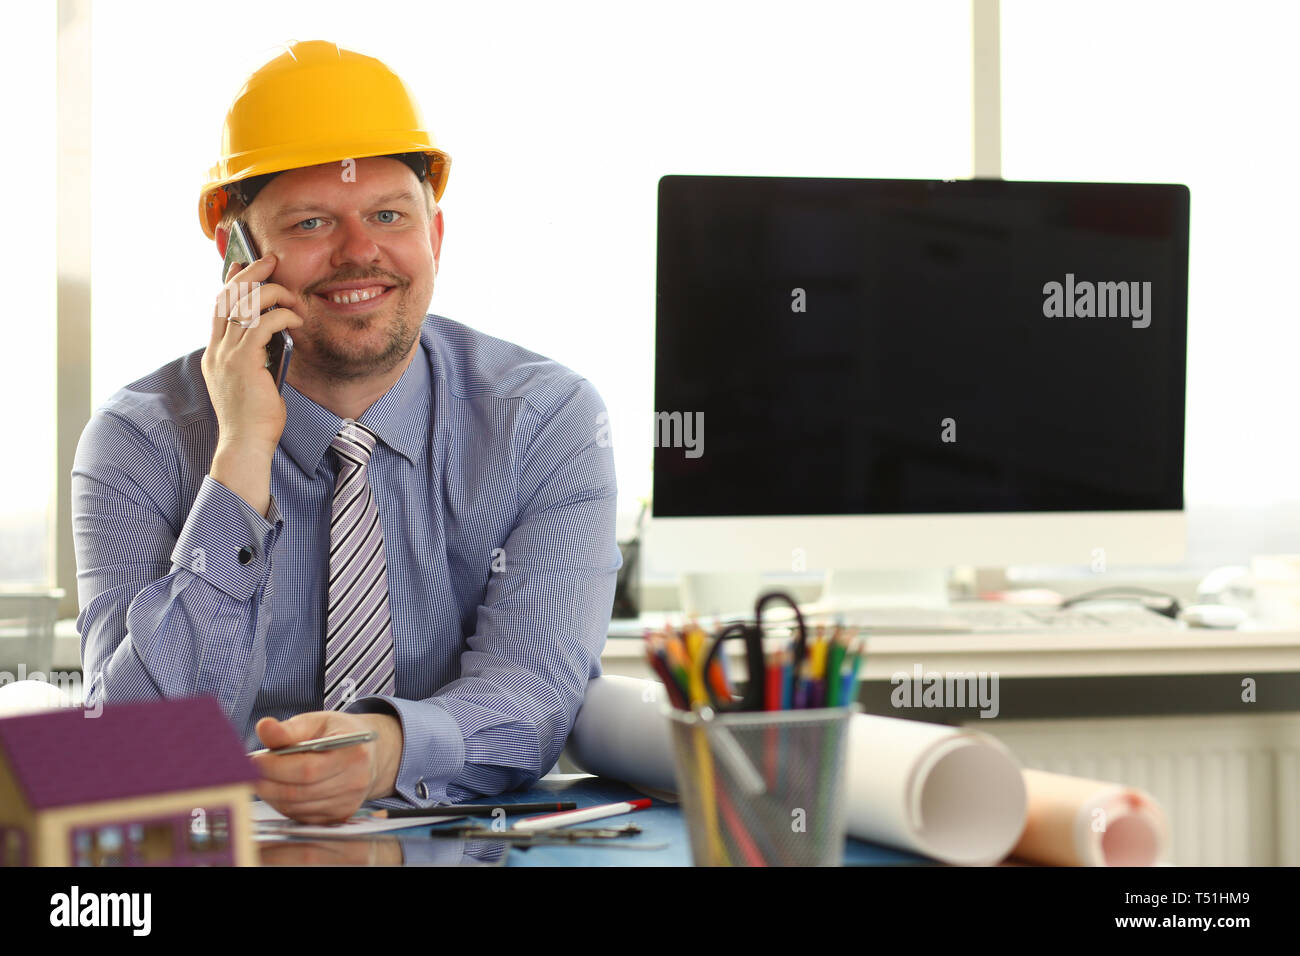 Foreman Sketching Architect Blueprint Making Deal - Stock Image